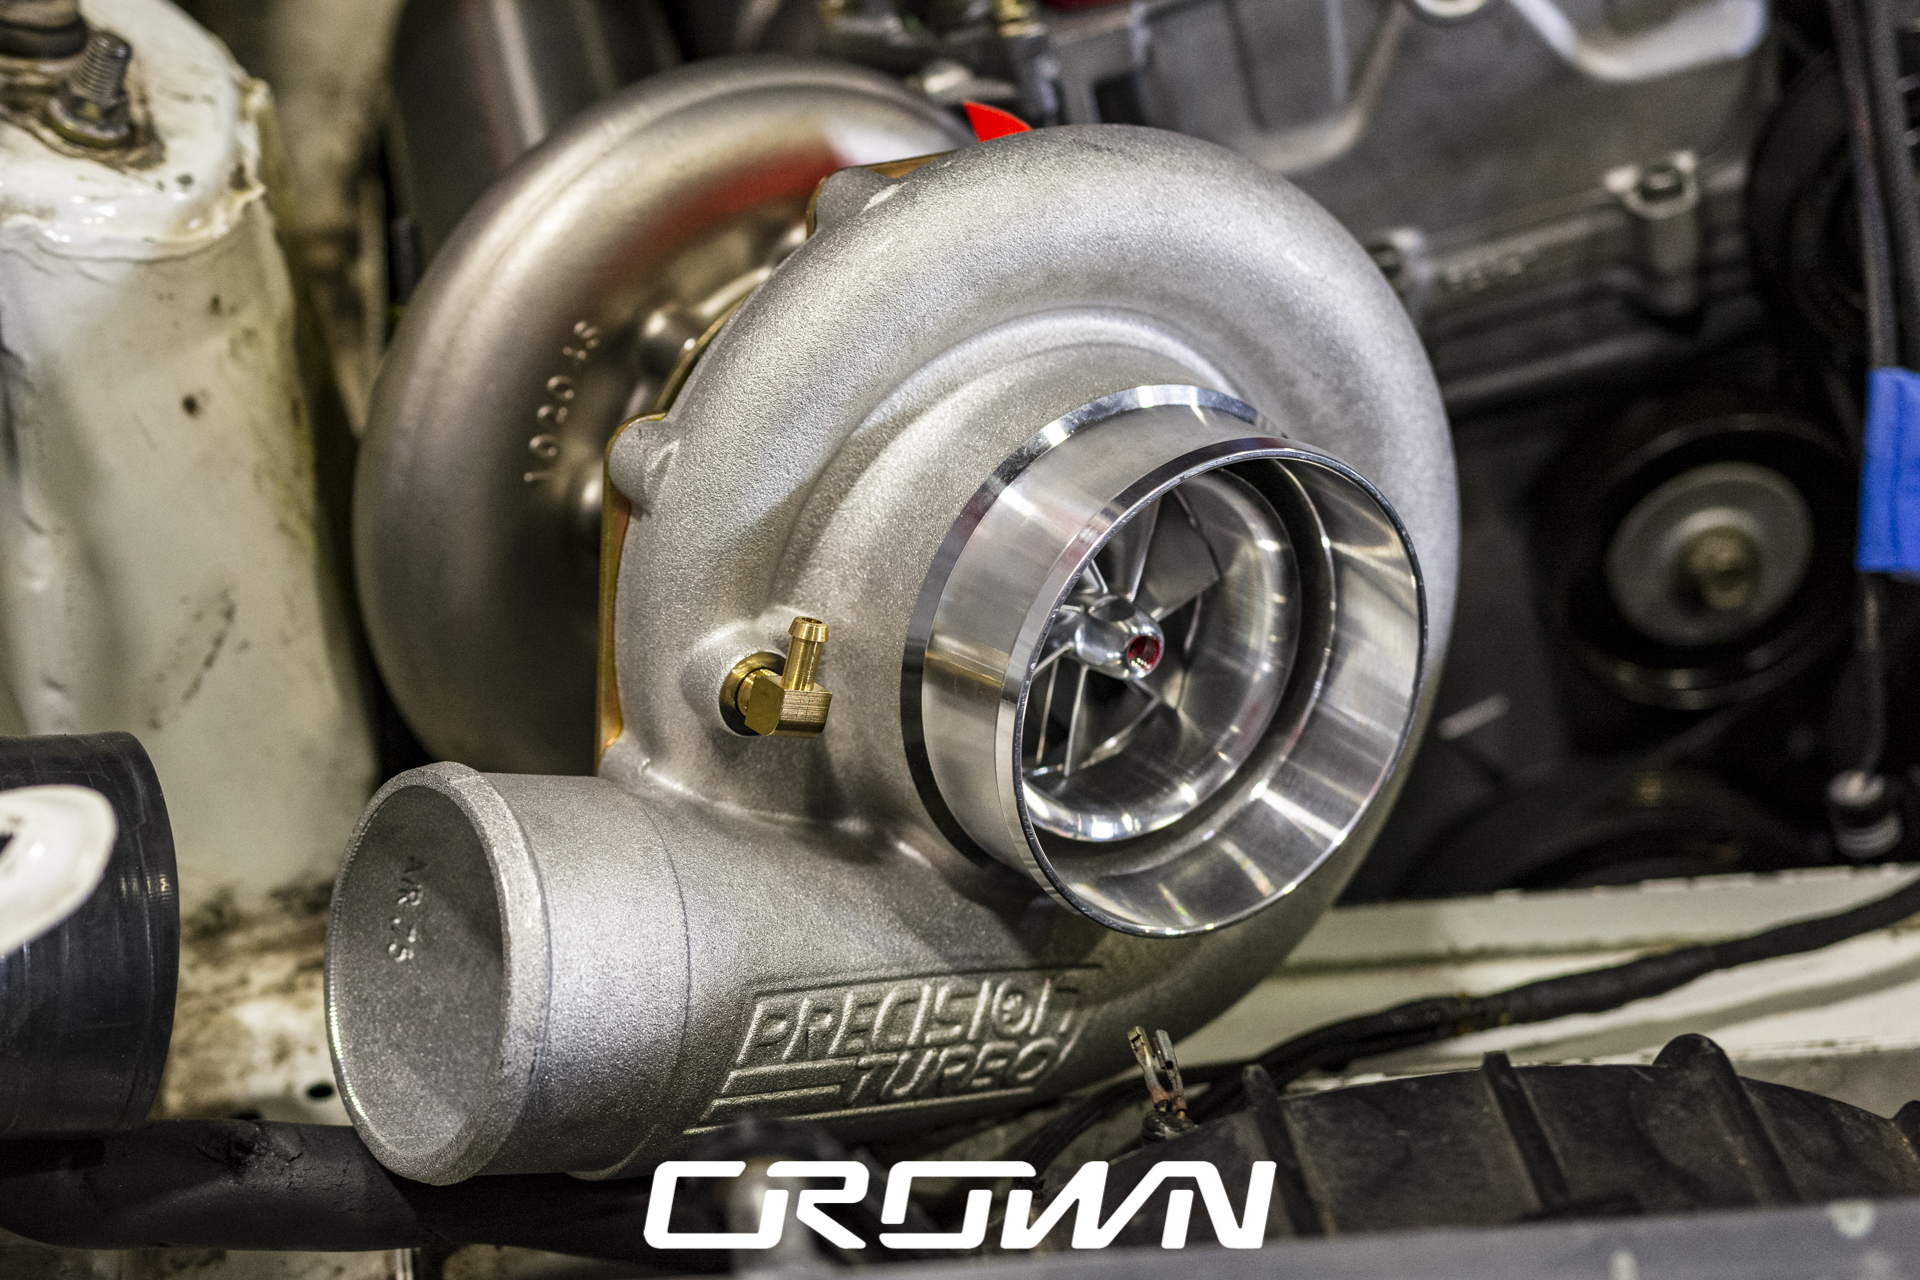 PT 6875 Precision Turbo and Engine on s2000